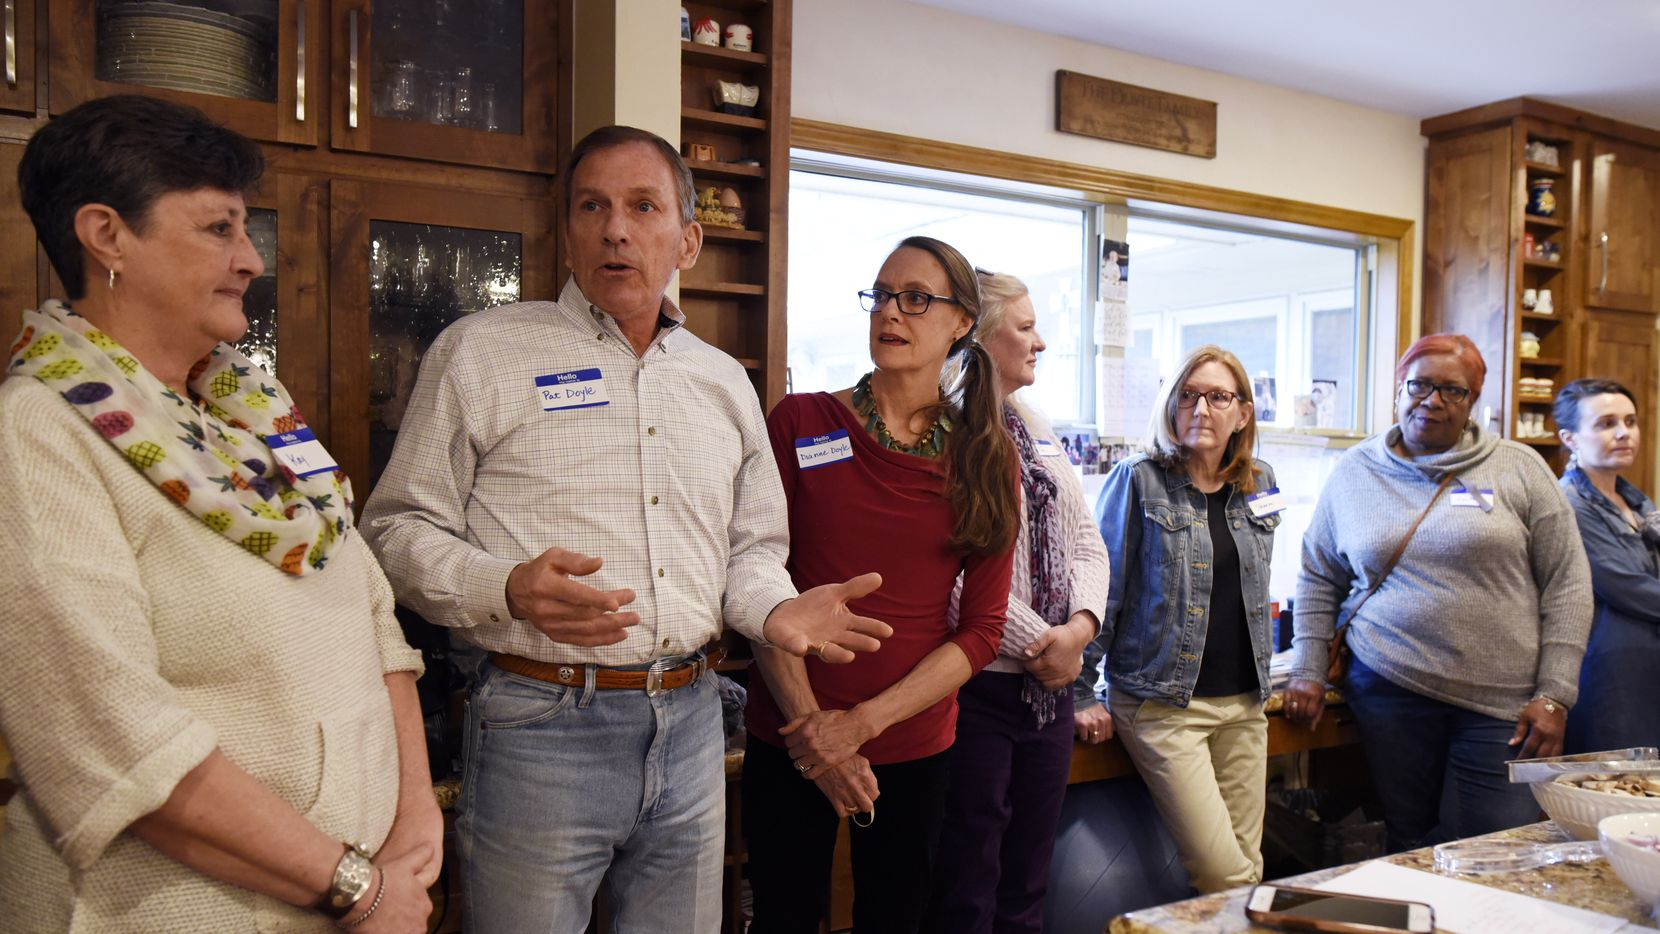 Pat Doyle (second from left) and his wife, Dianne (in red shirt), hosted a plant-based potluck at their North Dallas home earlier this year, before social distancing rules.